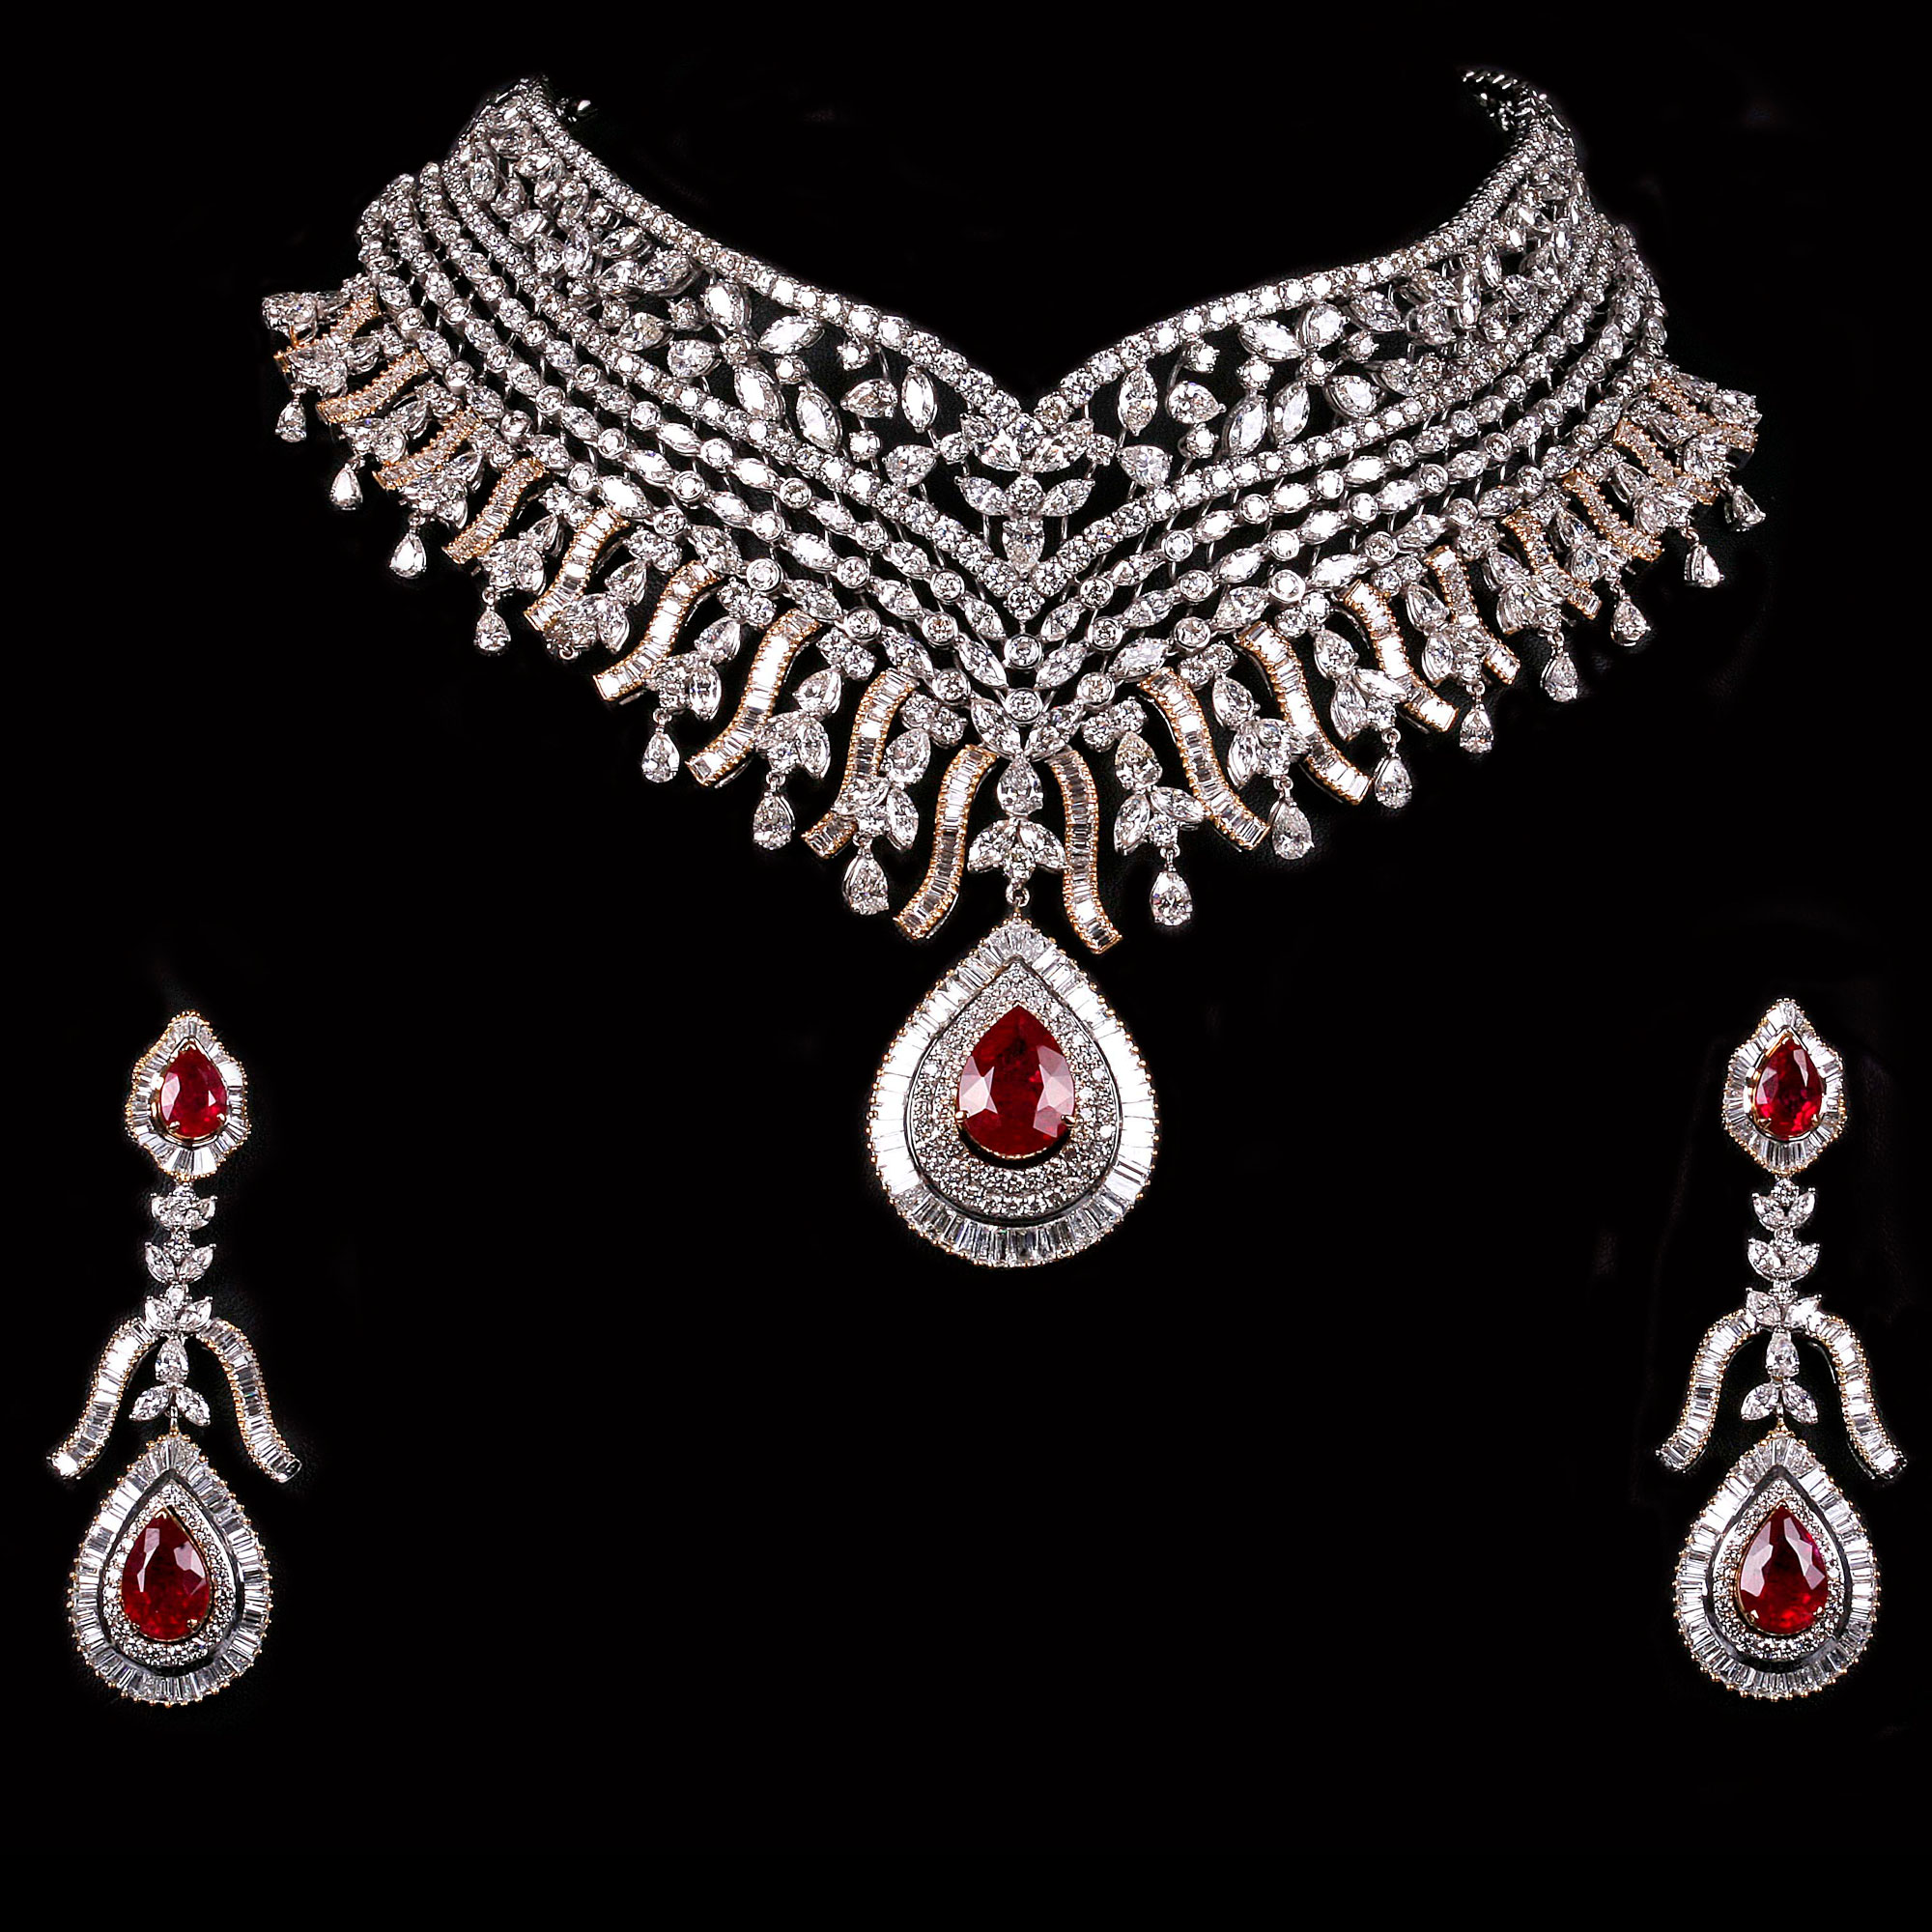 majestic a diamond exceptional jewellery jewelry high end choker moussaieff